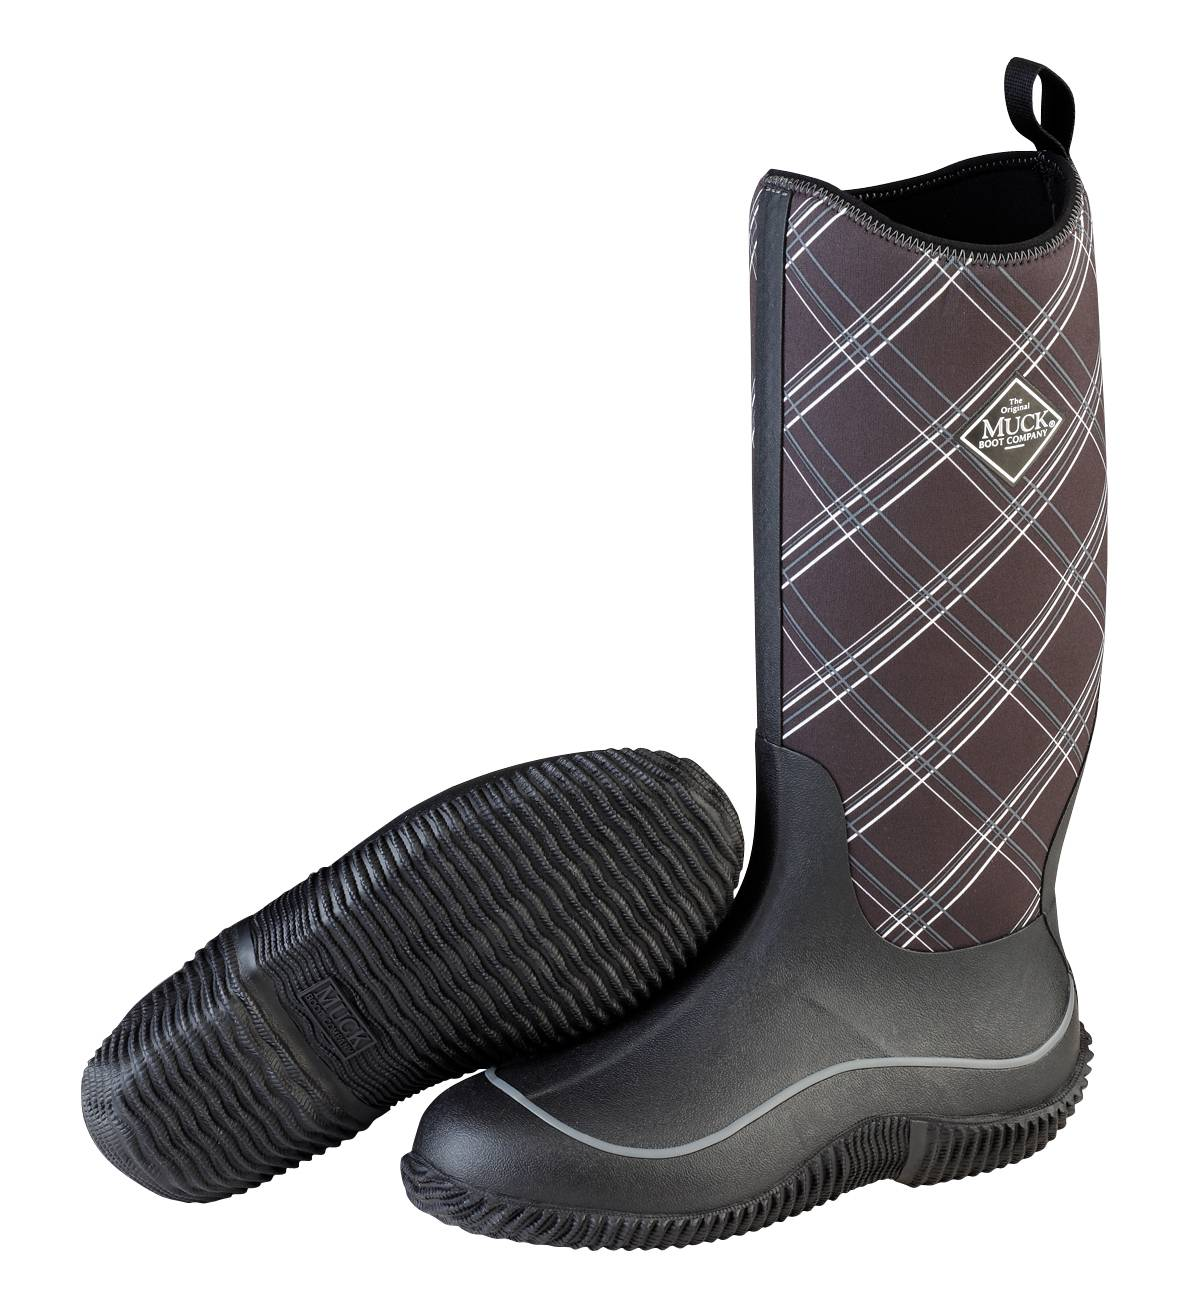 Muck Boots Hale Boot - Ladies - Black Gray Plaid